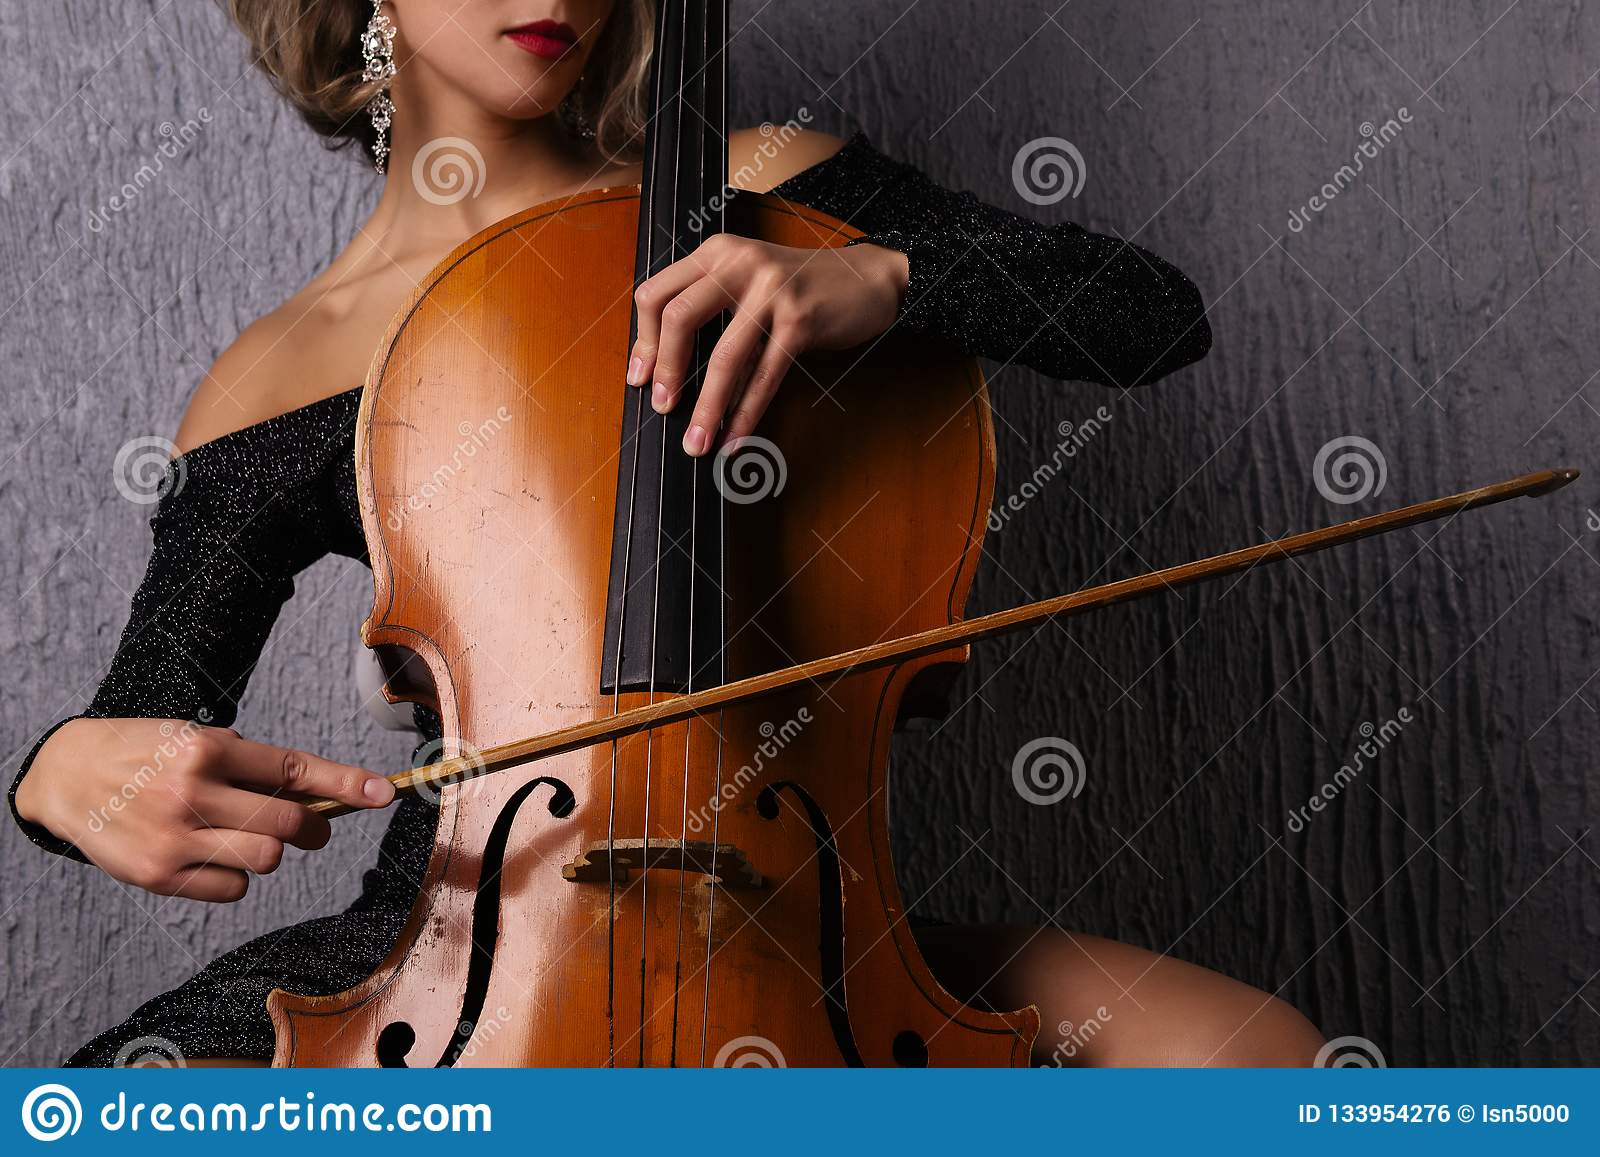 Female hands with a bow on cello strings